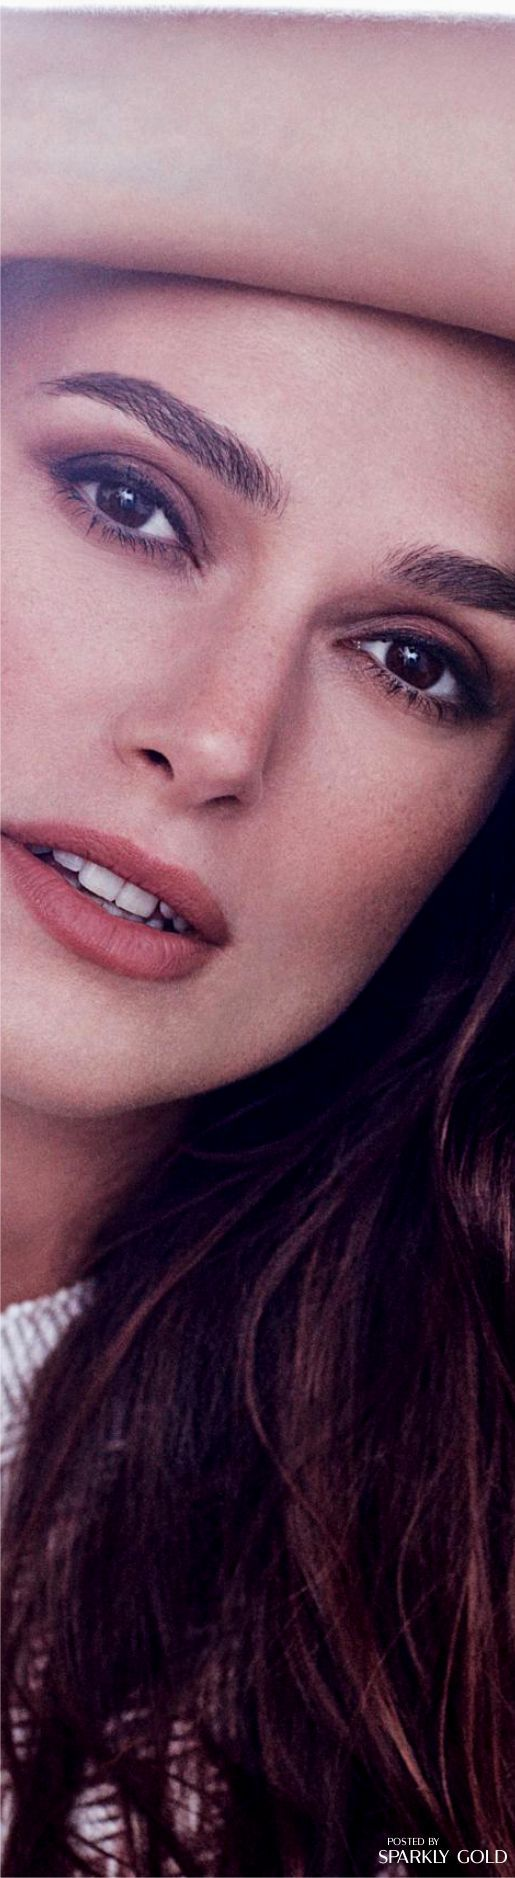 Keira Knightley Harper´s Bazaar UK Dec 16